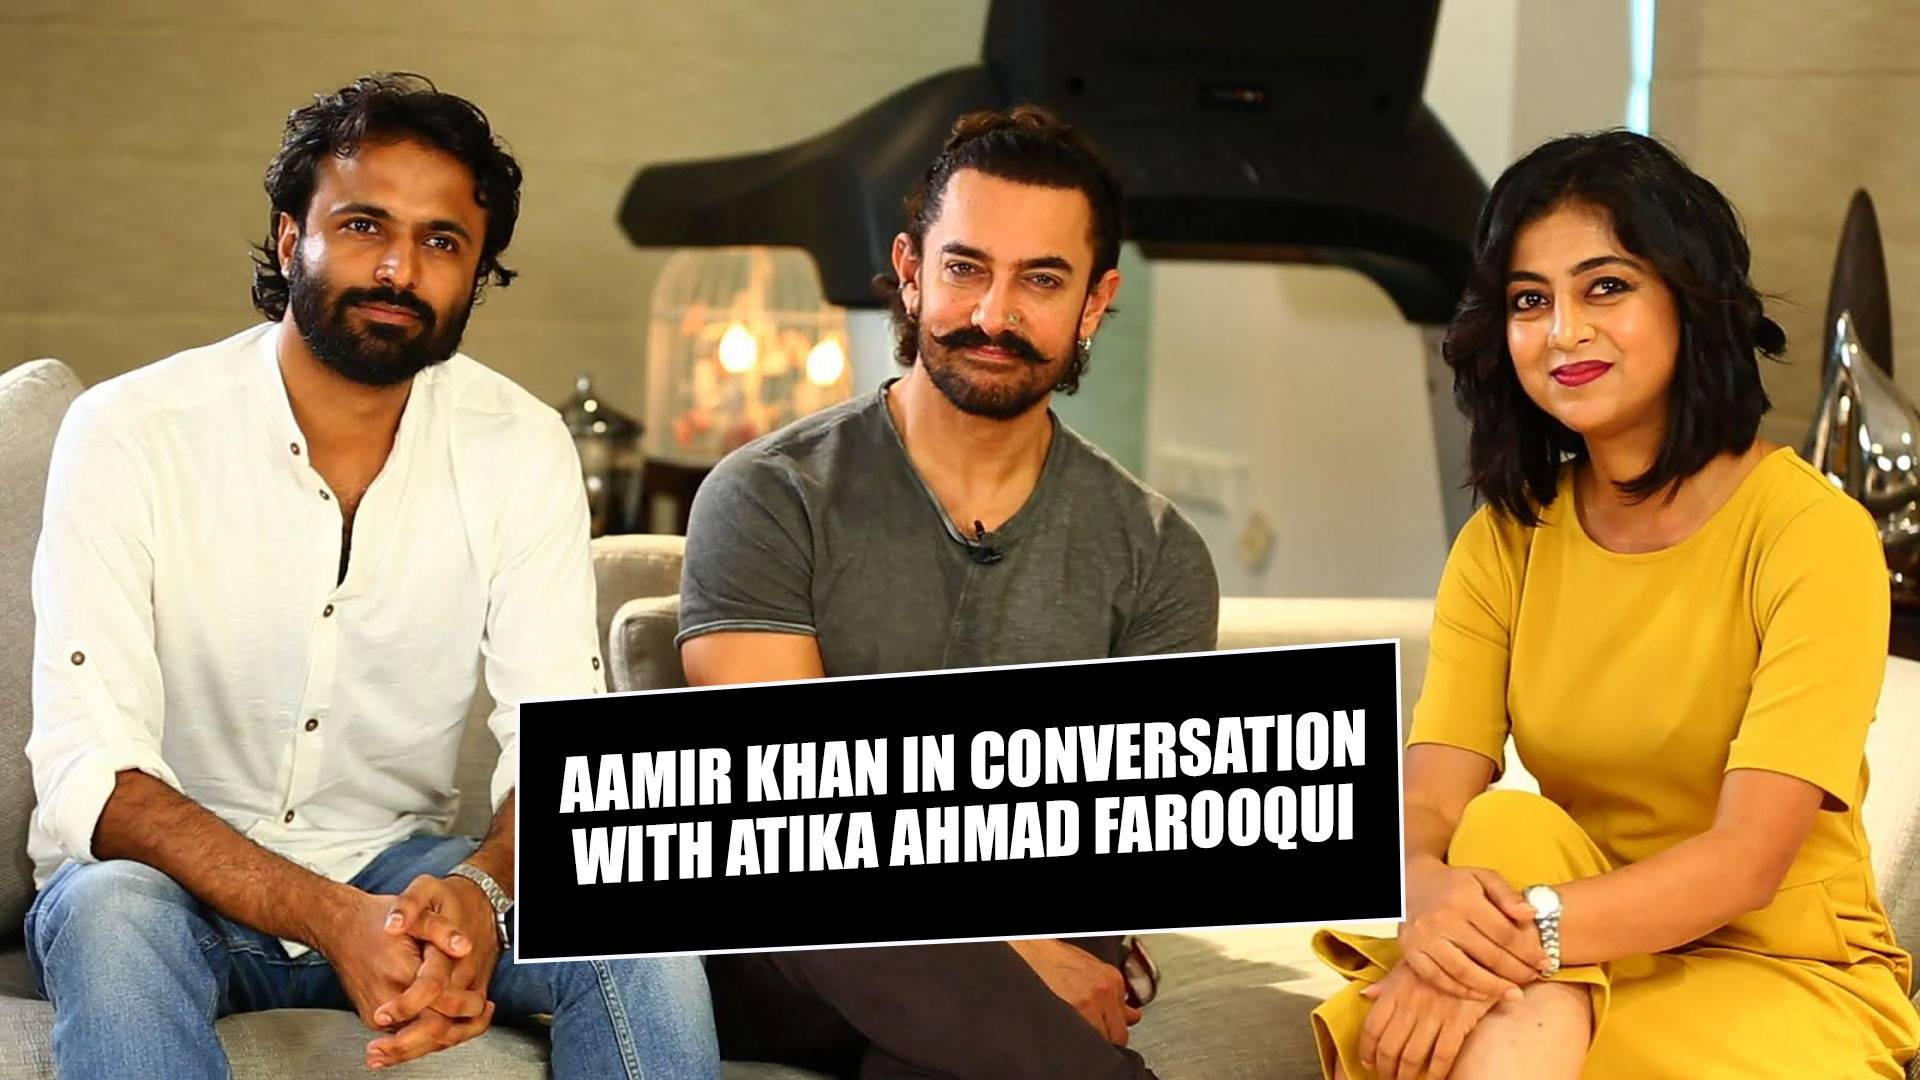 Aamir Khan in conversation with Atika Ahmad Farooqui